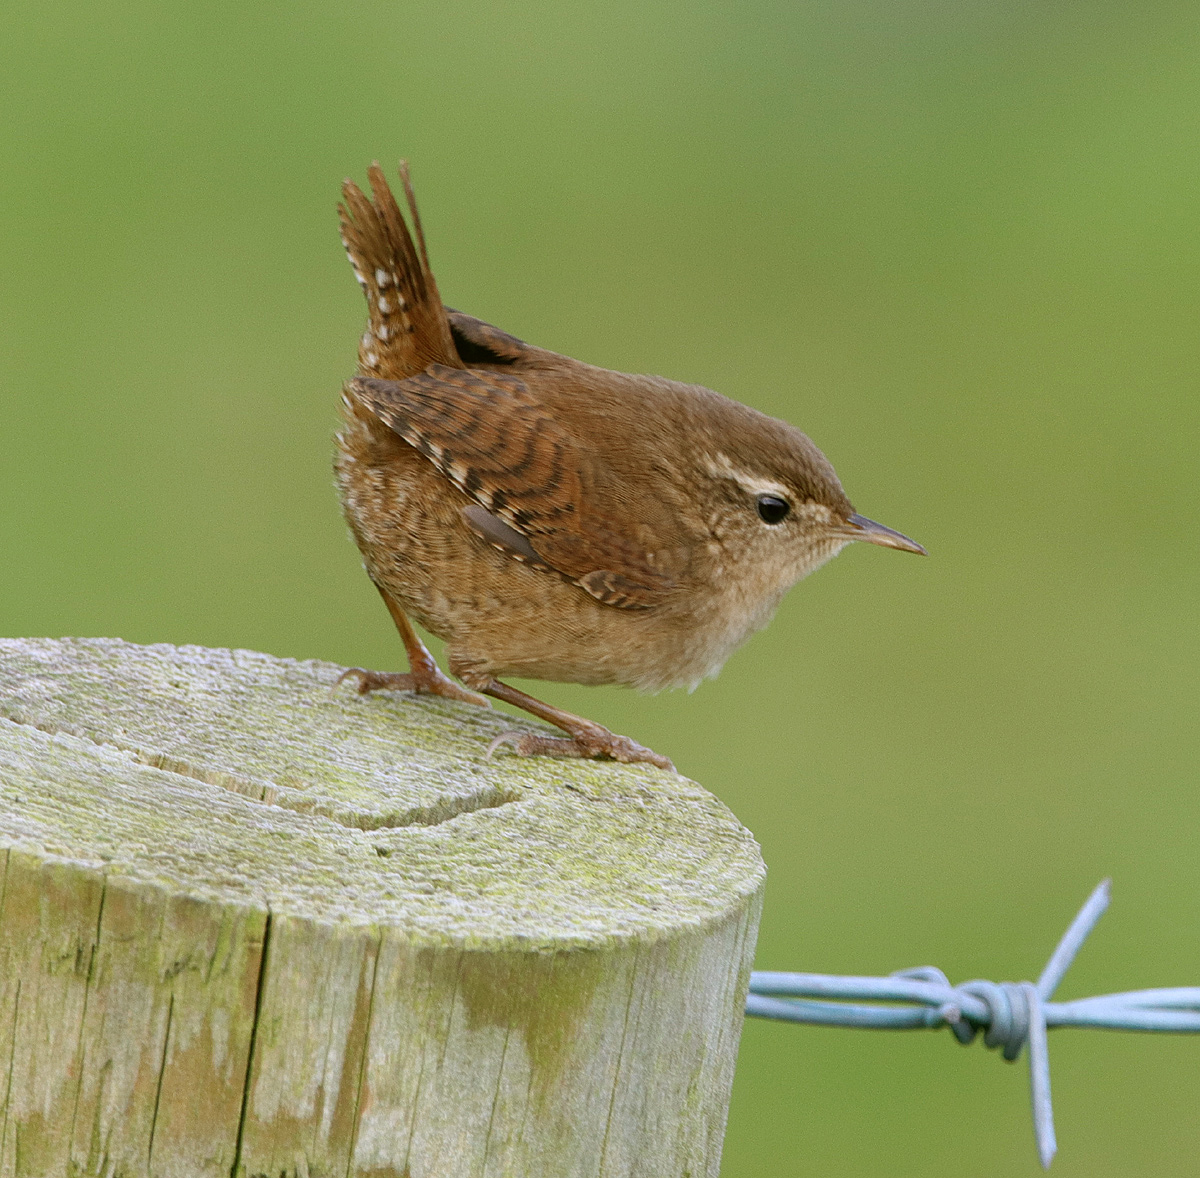 wrens latin singles If you come across a noisy, hyperactive little bird with bold white eyebrows, flicking its long tail as it hops from branch to branch, you may have spotted a bewick's wren.